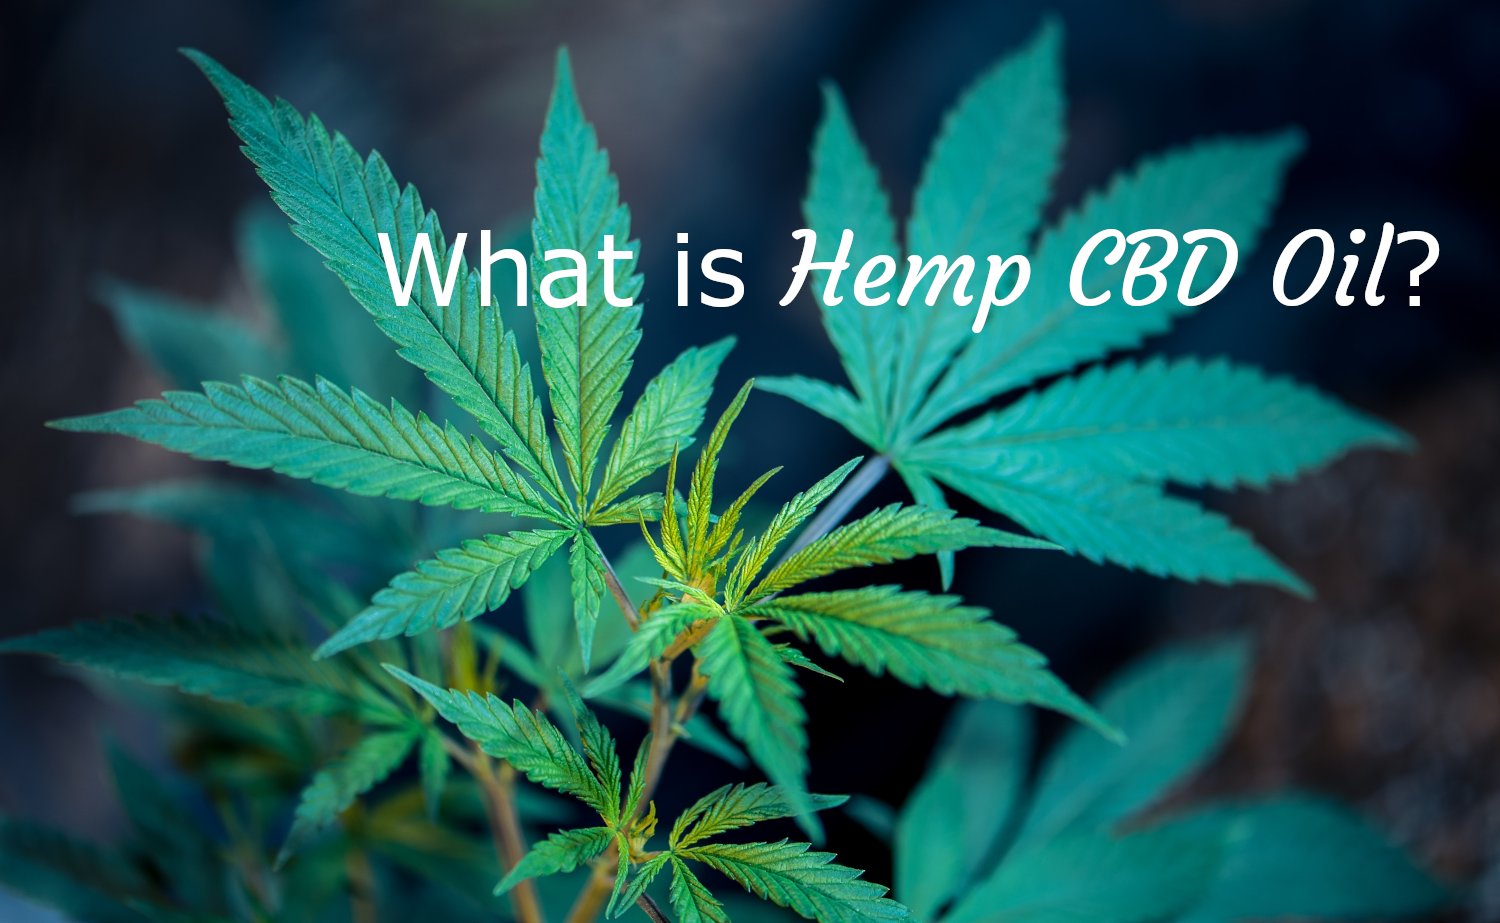 What is hemp CBD Oil